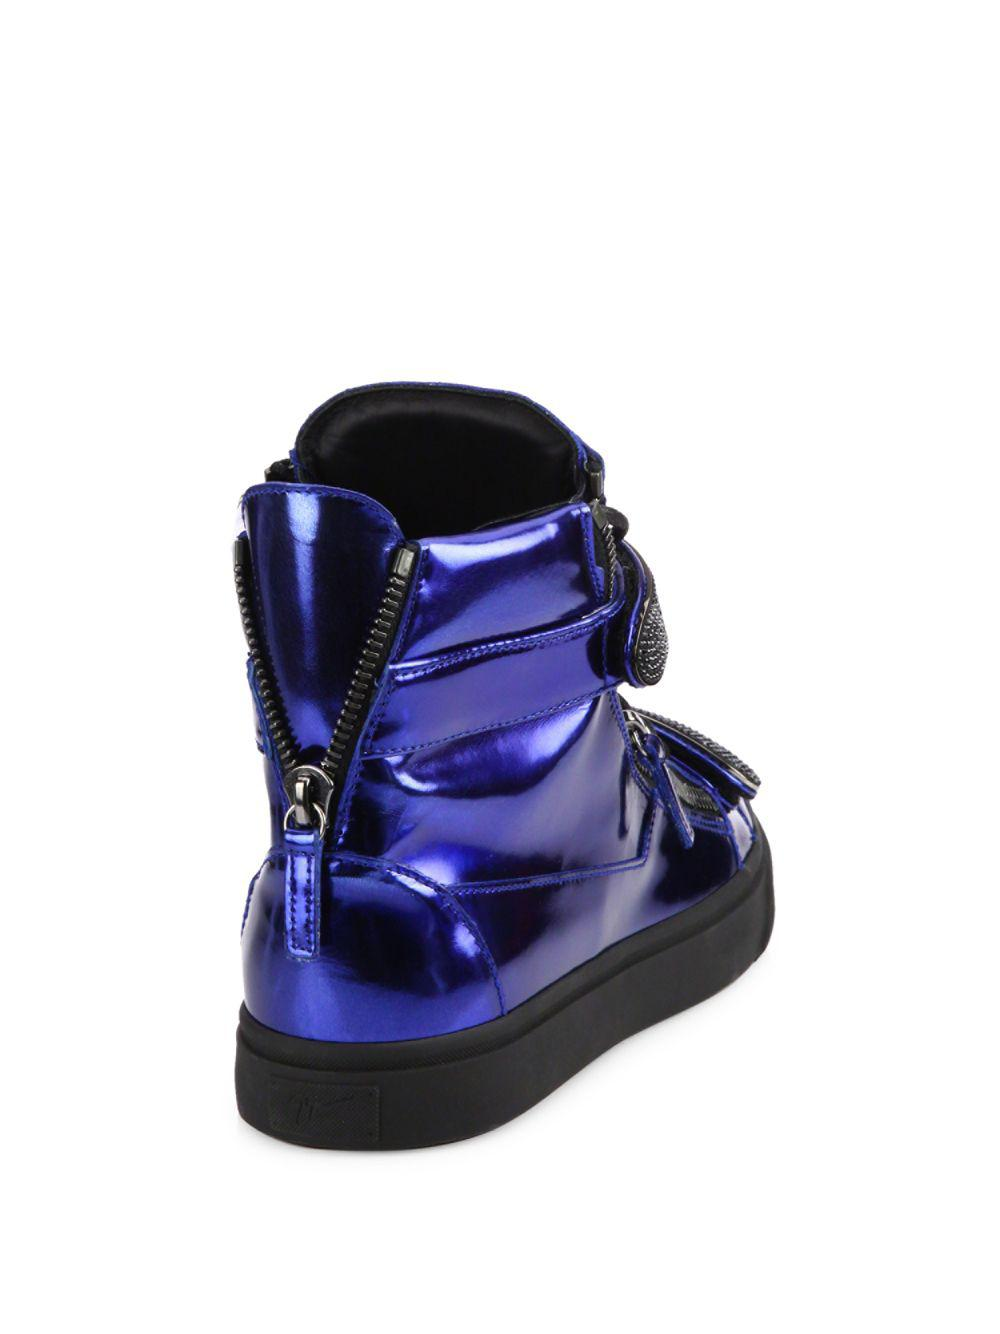 c6cdd65c1ae7d Lyst - Giuseppe Zanotti Metallic Double Bar High-top Sneakers in Blue for  Men - Save 2%